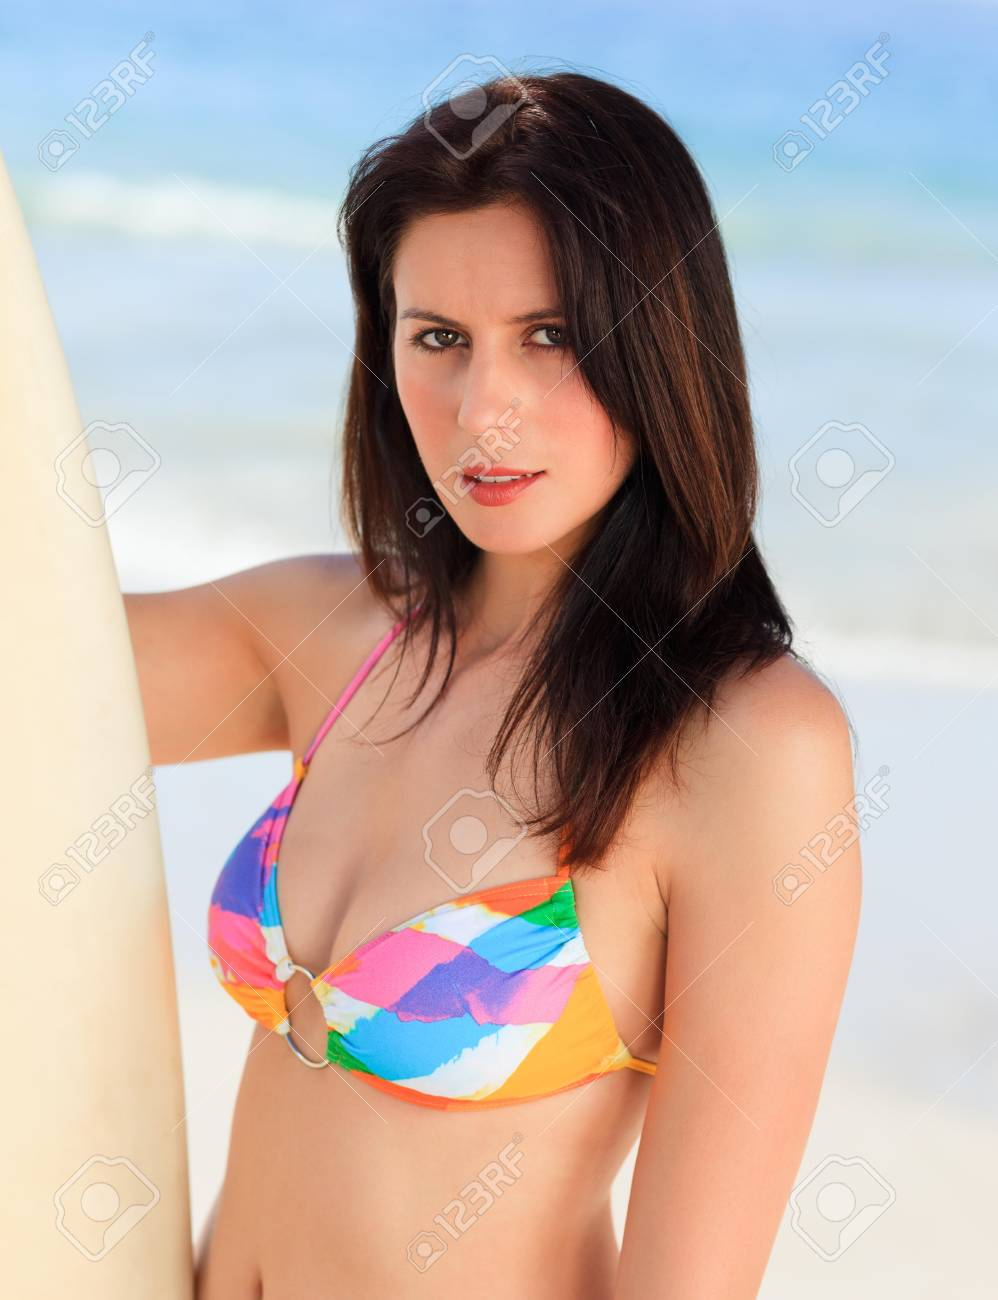 Lovely woman with her surfboard Stock Photo - 10212743